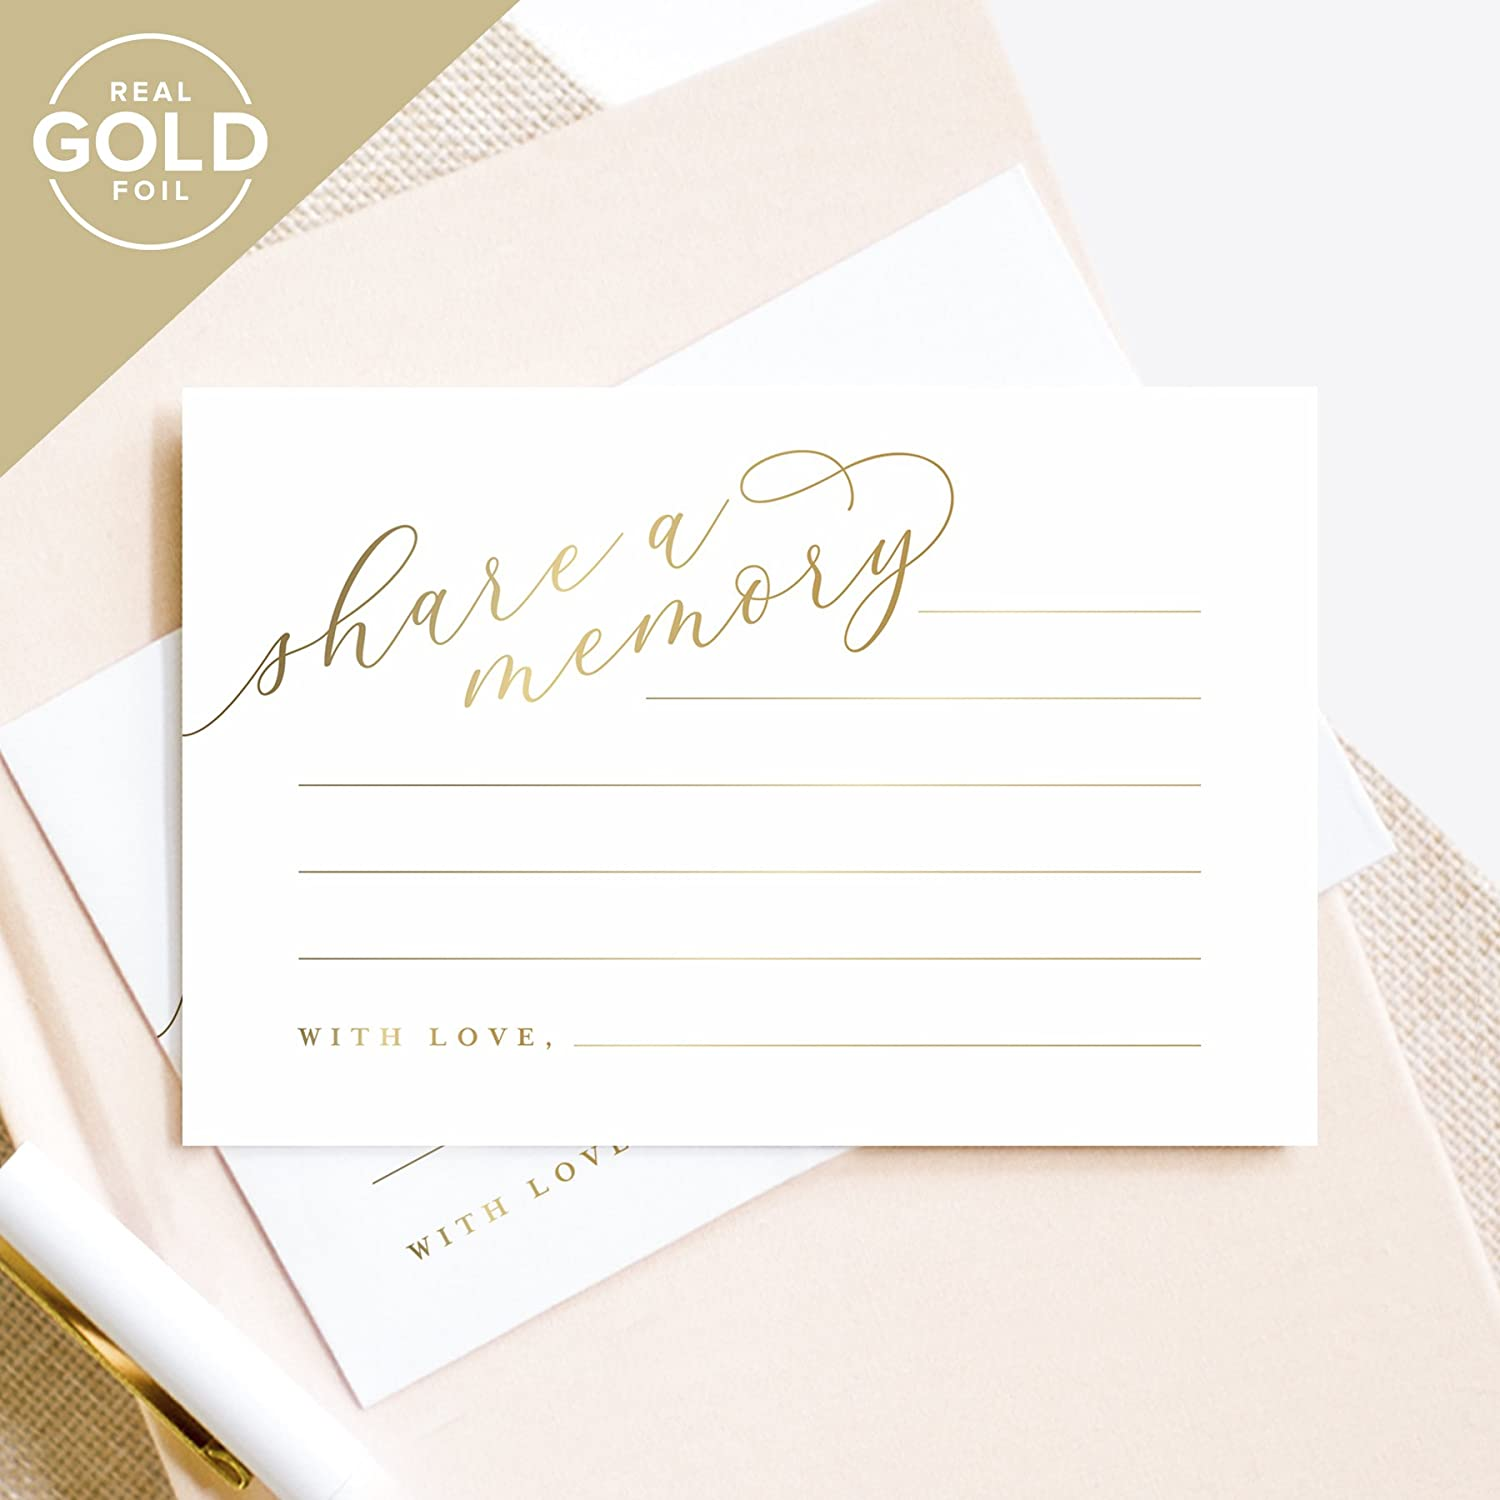 Gold Share A Memory Cards - Perfect for: Funeral, Celebration of Life, Memorial, Retirement, Going Away Party, Birthday, Graduation, Wedding - 50 Pack of 4x6 Cards from Bliss Paper Boutique